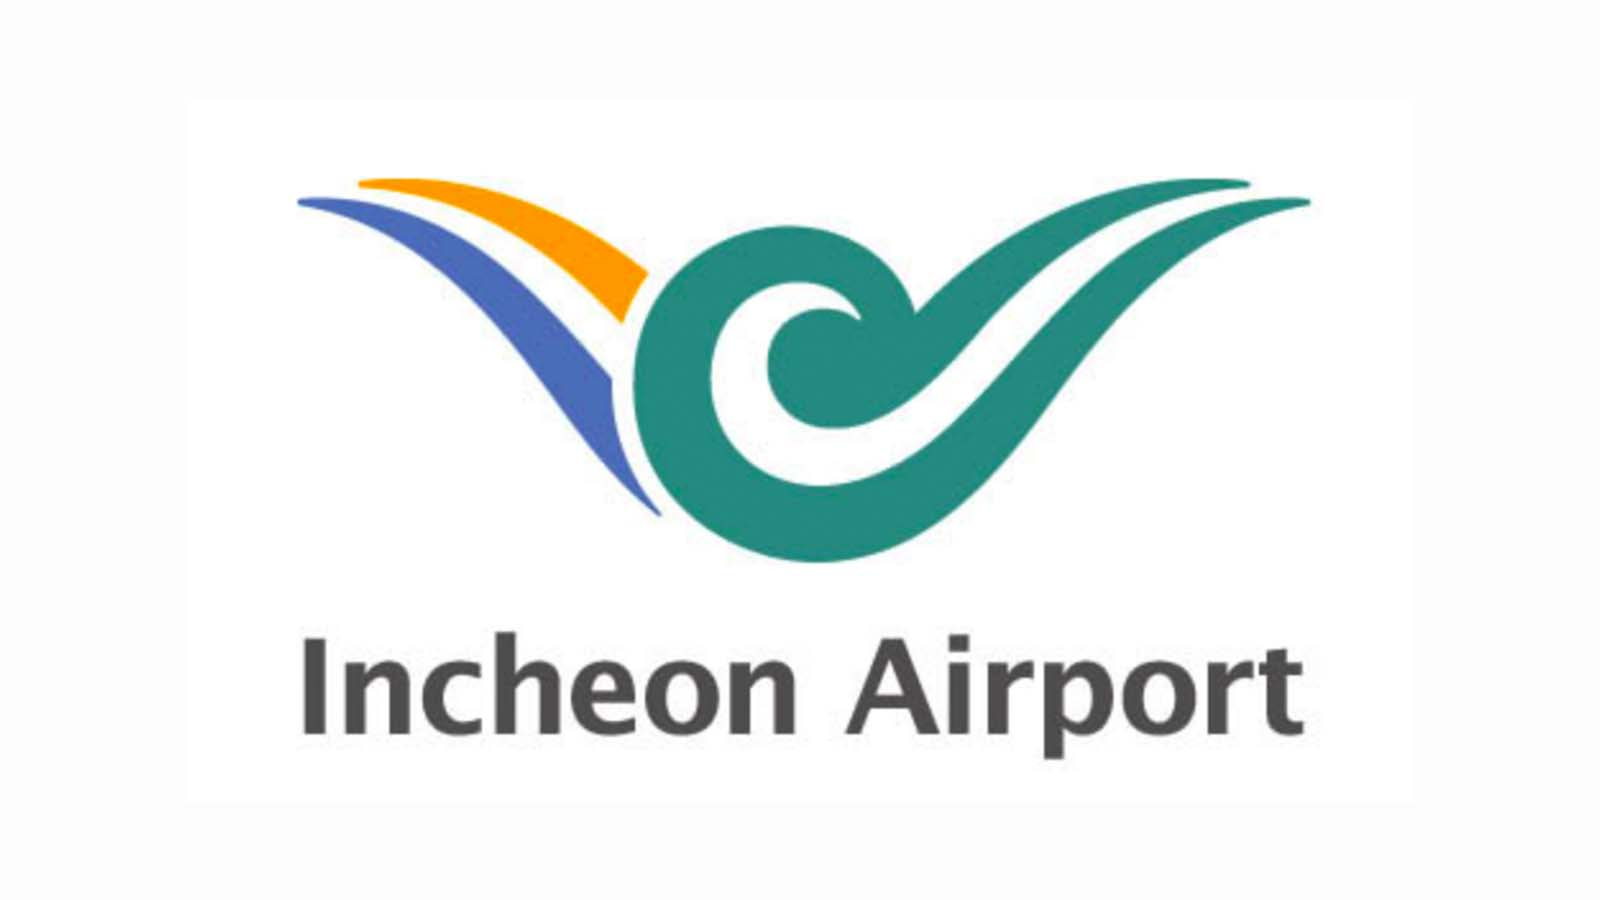 Incheon Airport to Operate Terminal 4 of Kuwait Airport